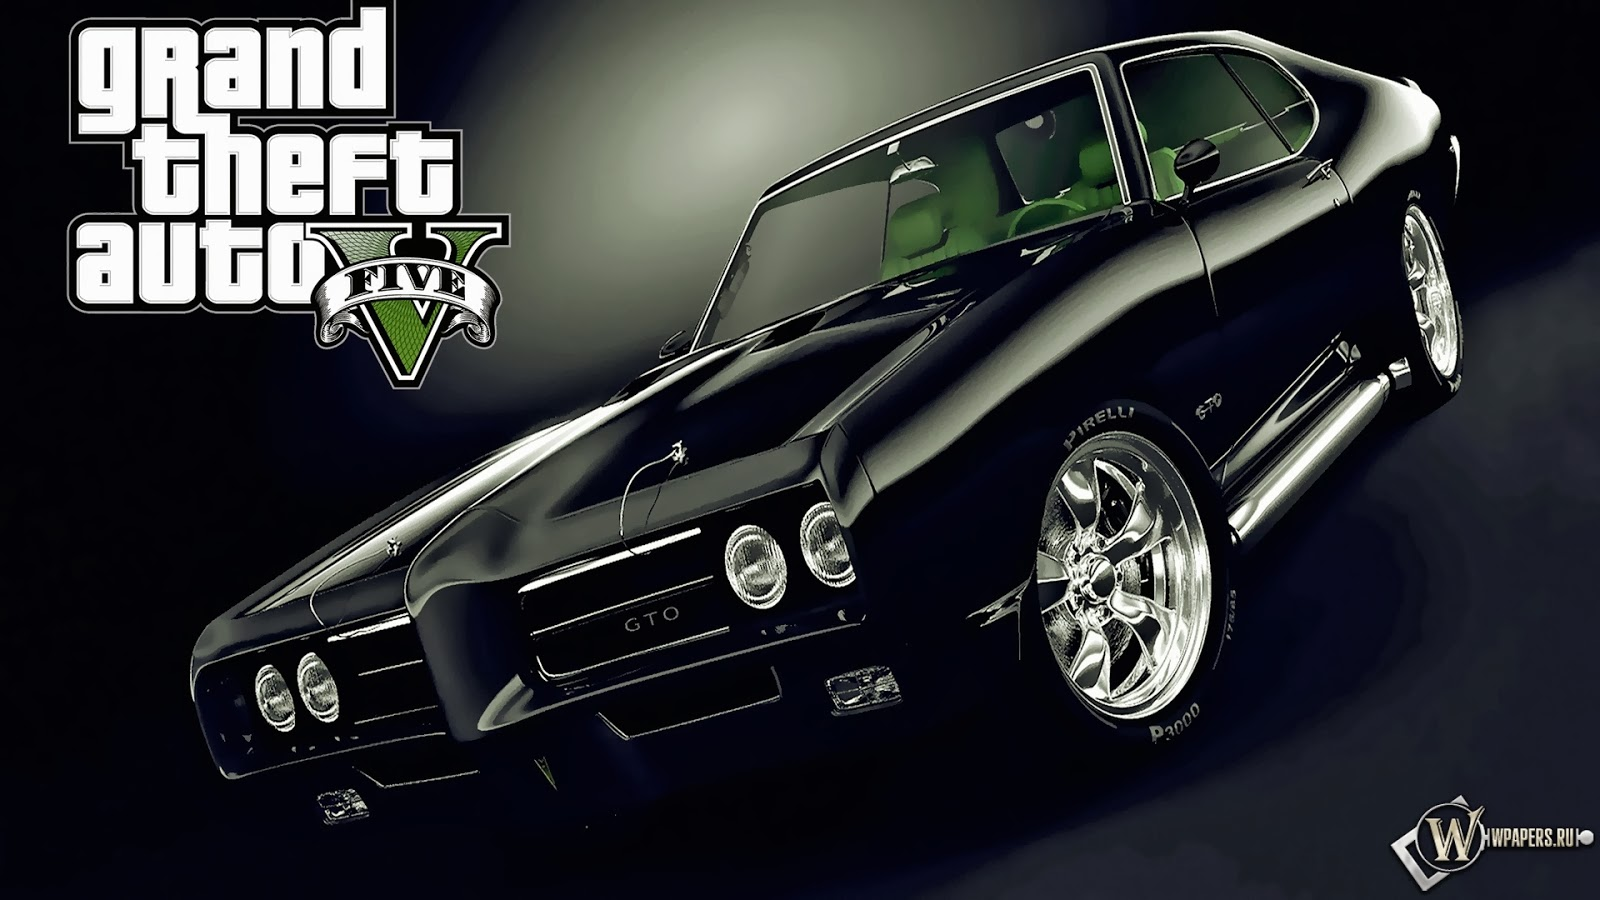 Cars Grand Theft Auto GTA V Wallpaper HDjpg 1600x900